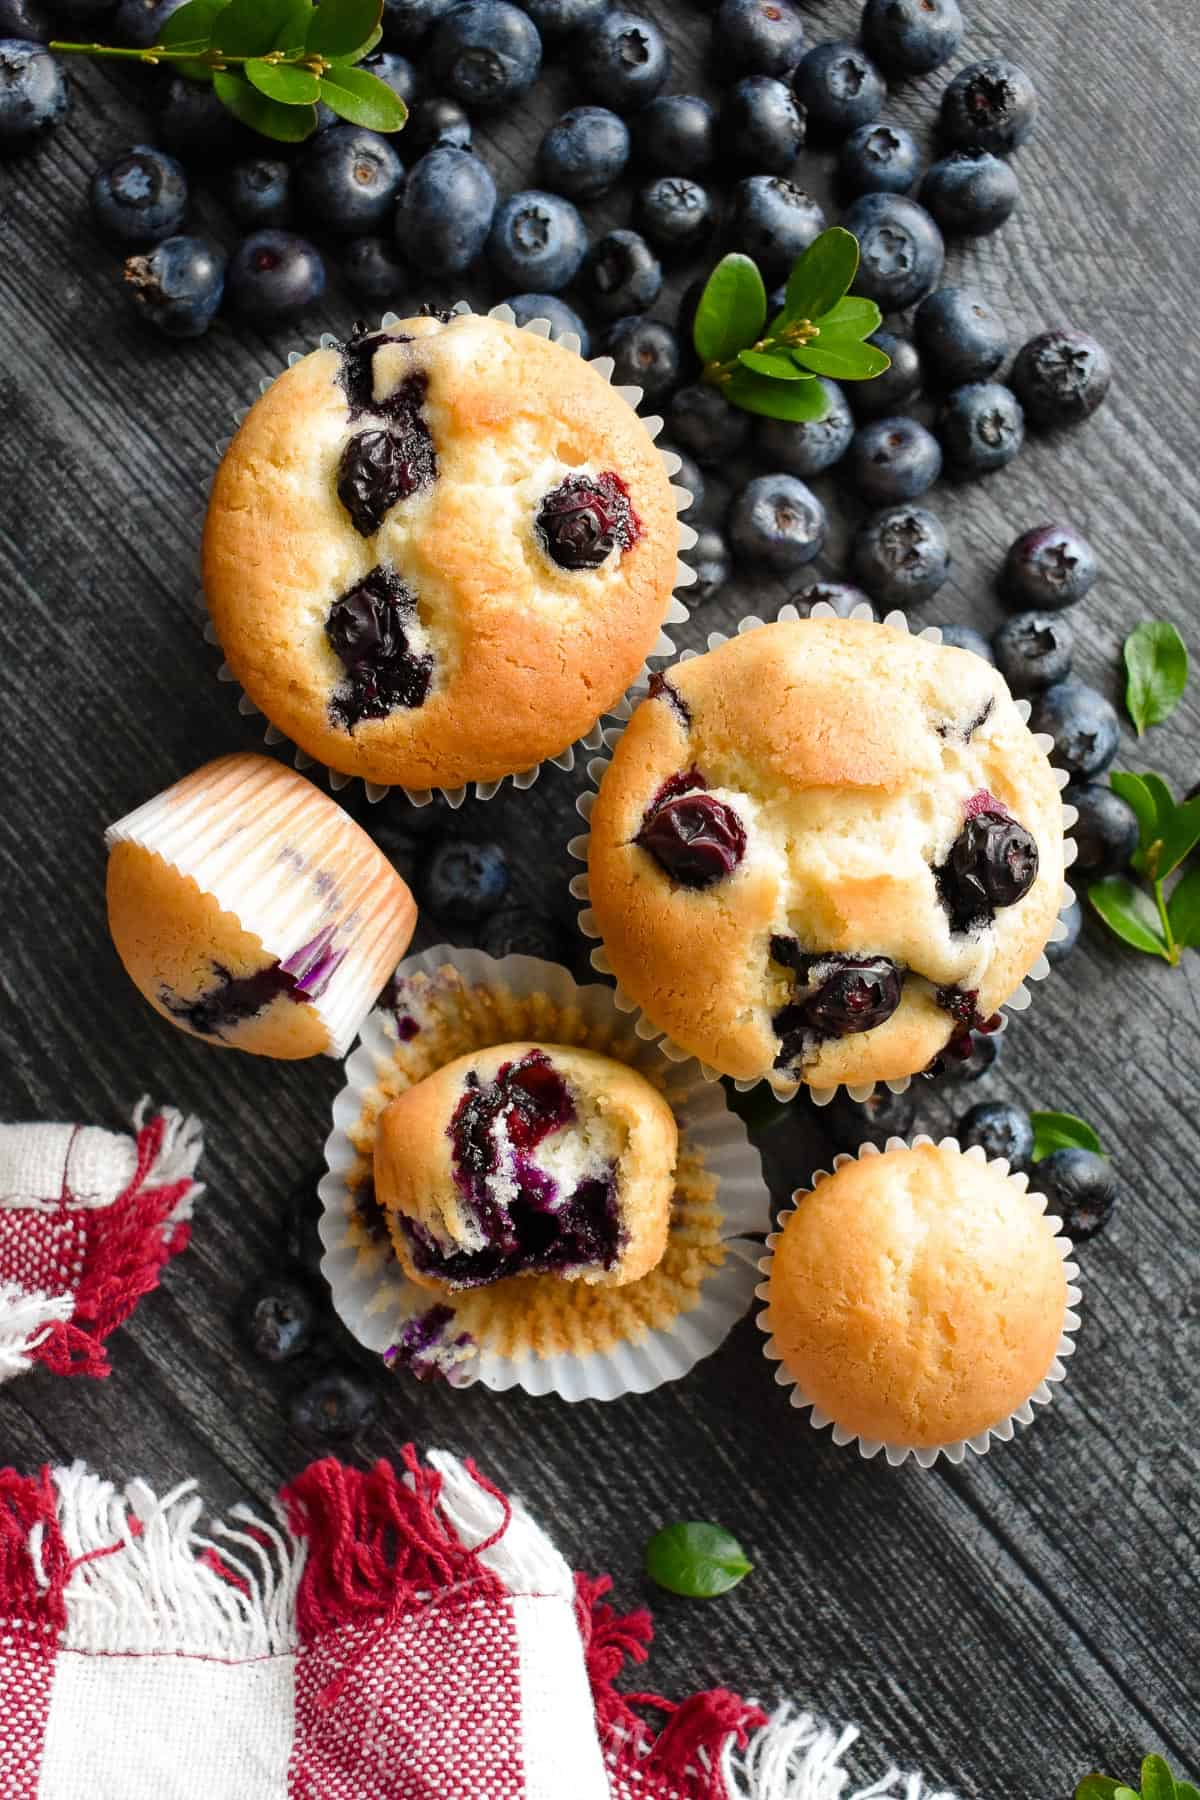 These Sour Cream Blueberry Muffins are bursting with sweet and fresh blueberry flavor. They are soft and perfectly moist on the inside with perfectly golden brown top. #blueberrymuffins #muffins #olgainthekitchen #breakfast #dessert #summer #bread #easyrecipe